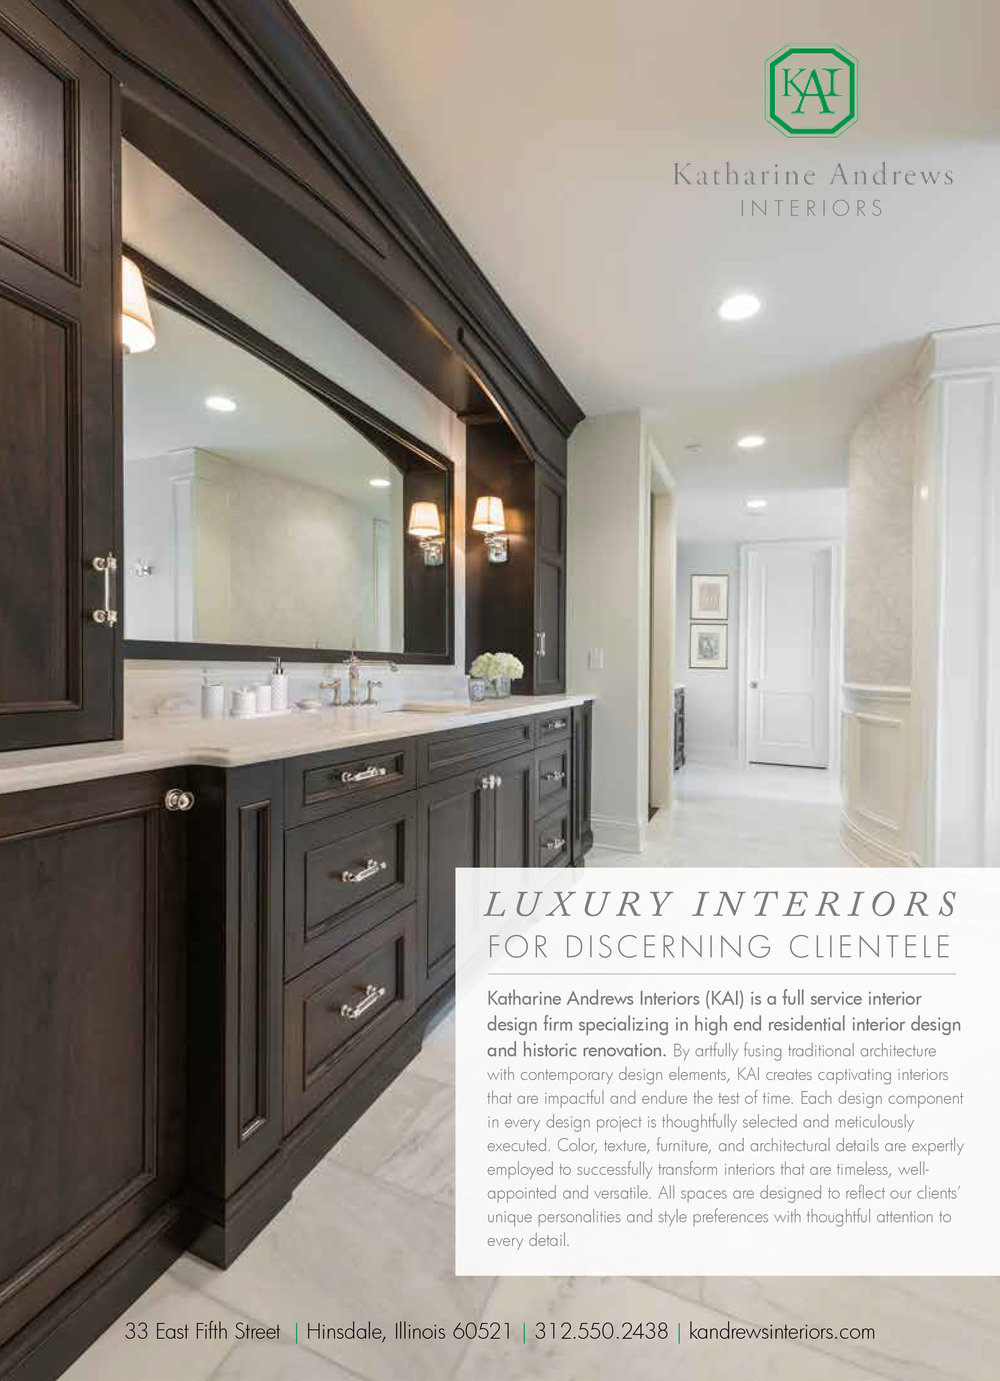 Katharine Andrews Interiors, LLC - Advertisement in Hinsdale Living's Home & Design Fall 2017 Issue (No. 68, October 2017)